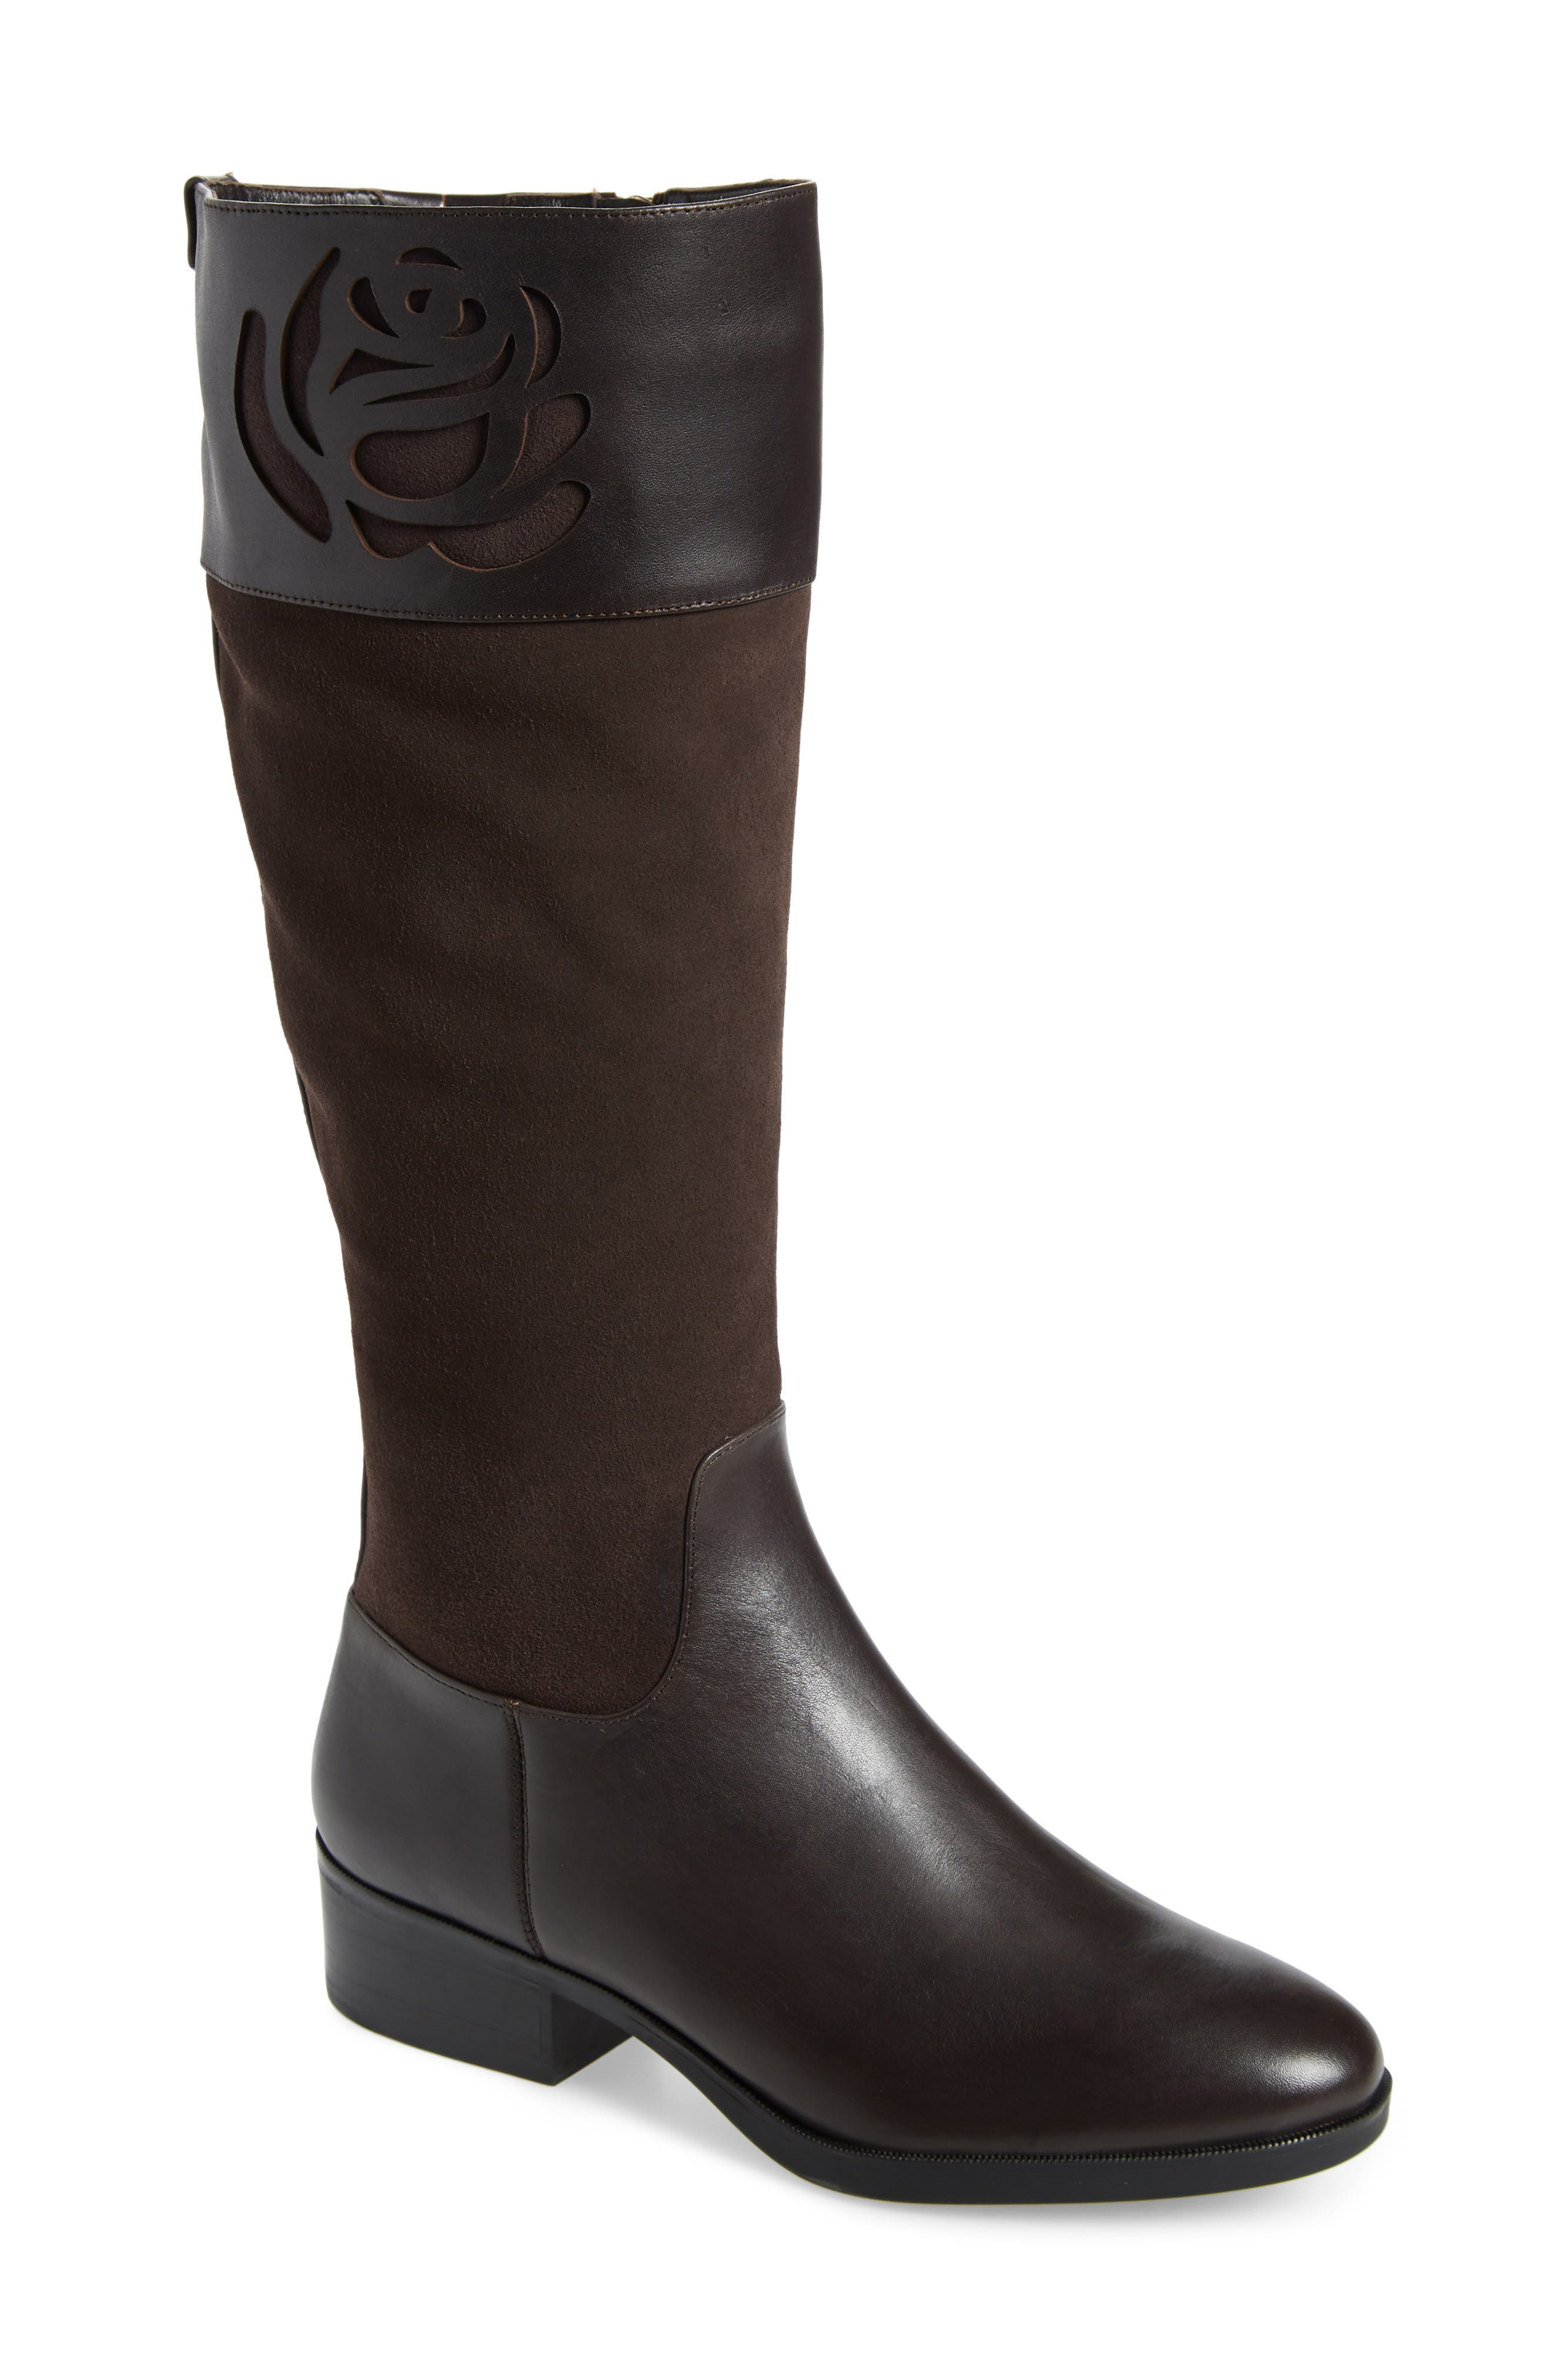 TARYN ROSE Georgia Water Resistant Collection Boot, Main, color, CHOCOLATE LEATHER/ SUEDE